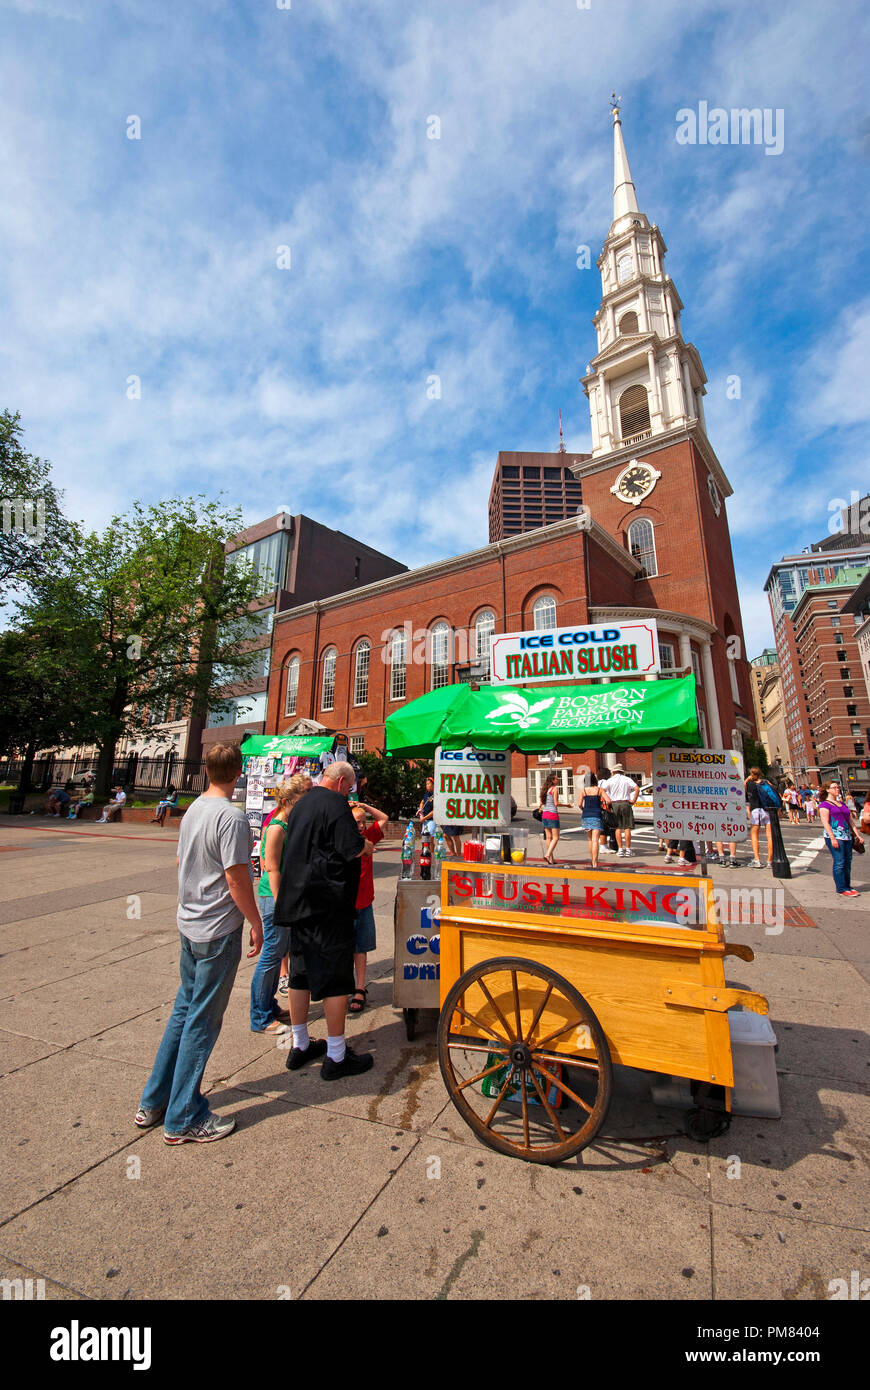 Kiosk selling soft drinks and italian slush at Boston Common (Park Street Church in the background), Boston, Suffolk County, Massachusetts, USA - Stock Image